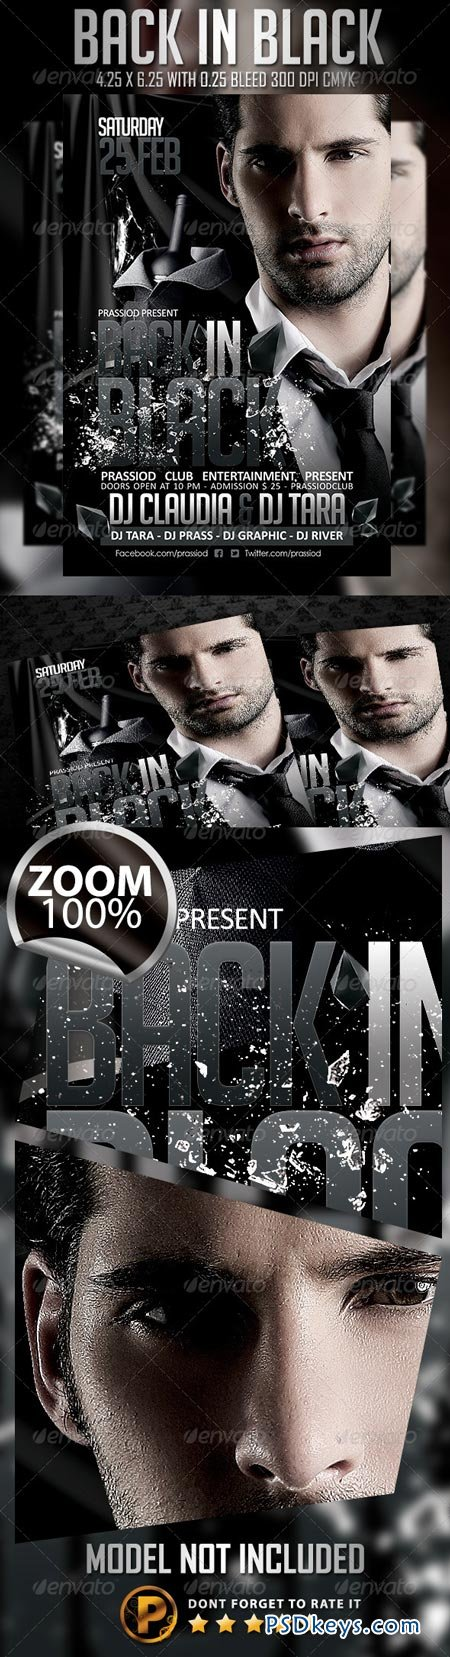 Back In Black Flyer Template   Free Download Photoshop